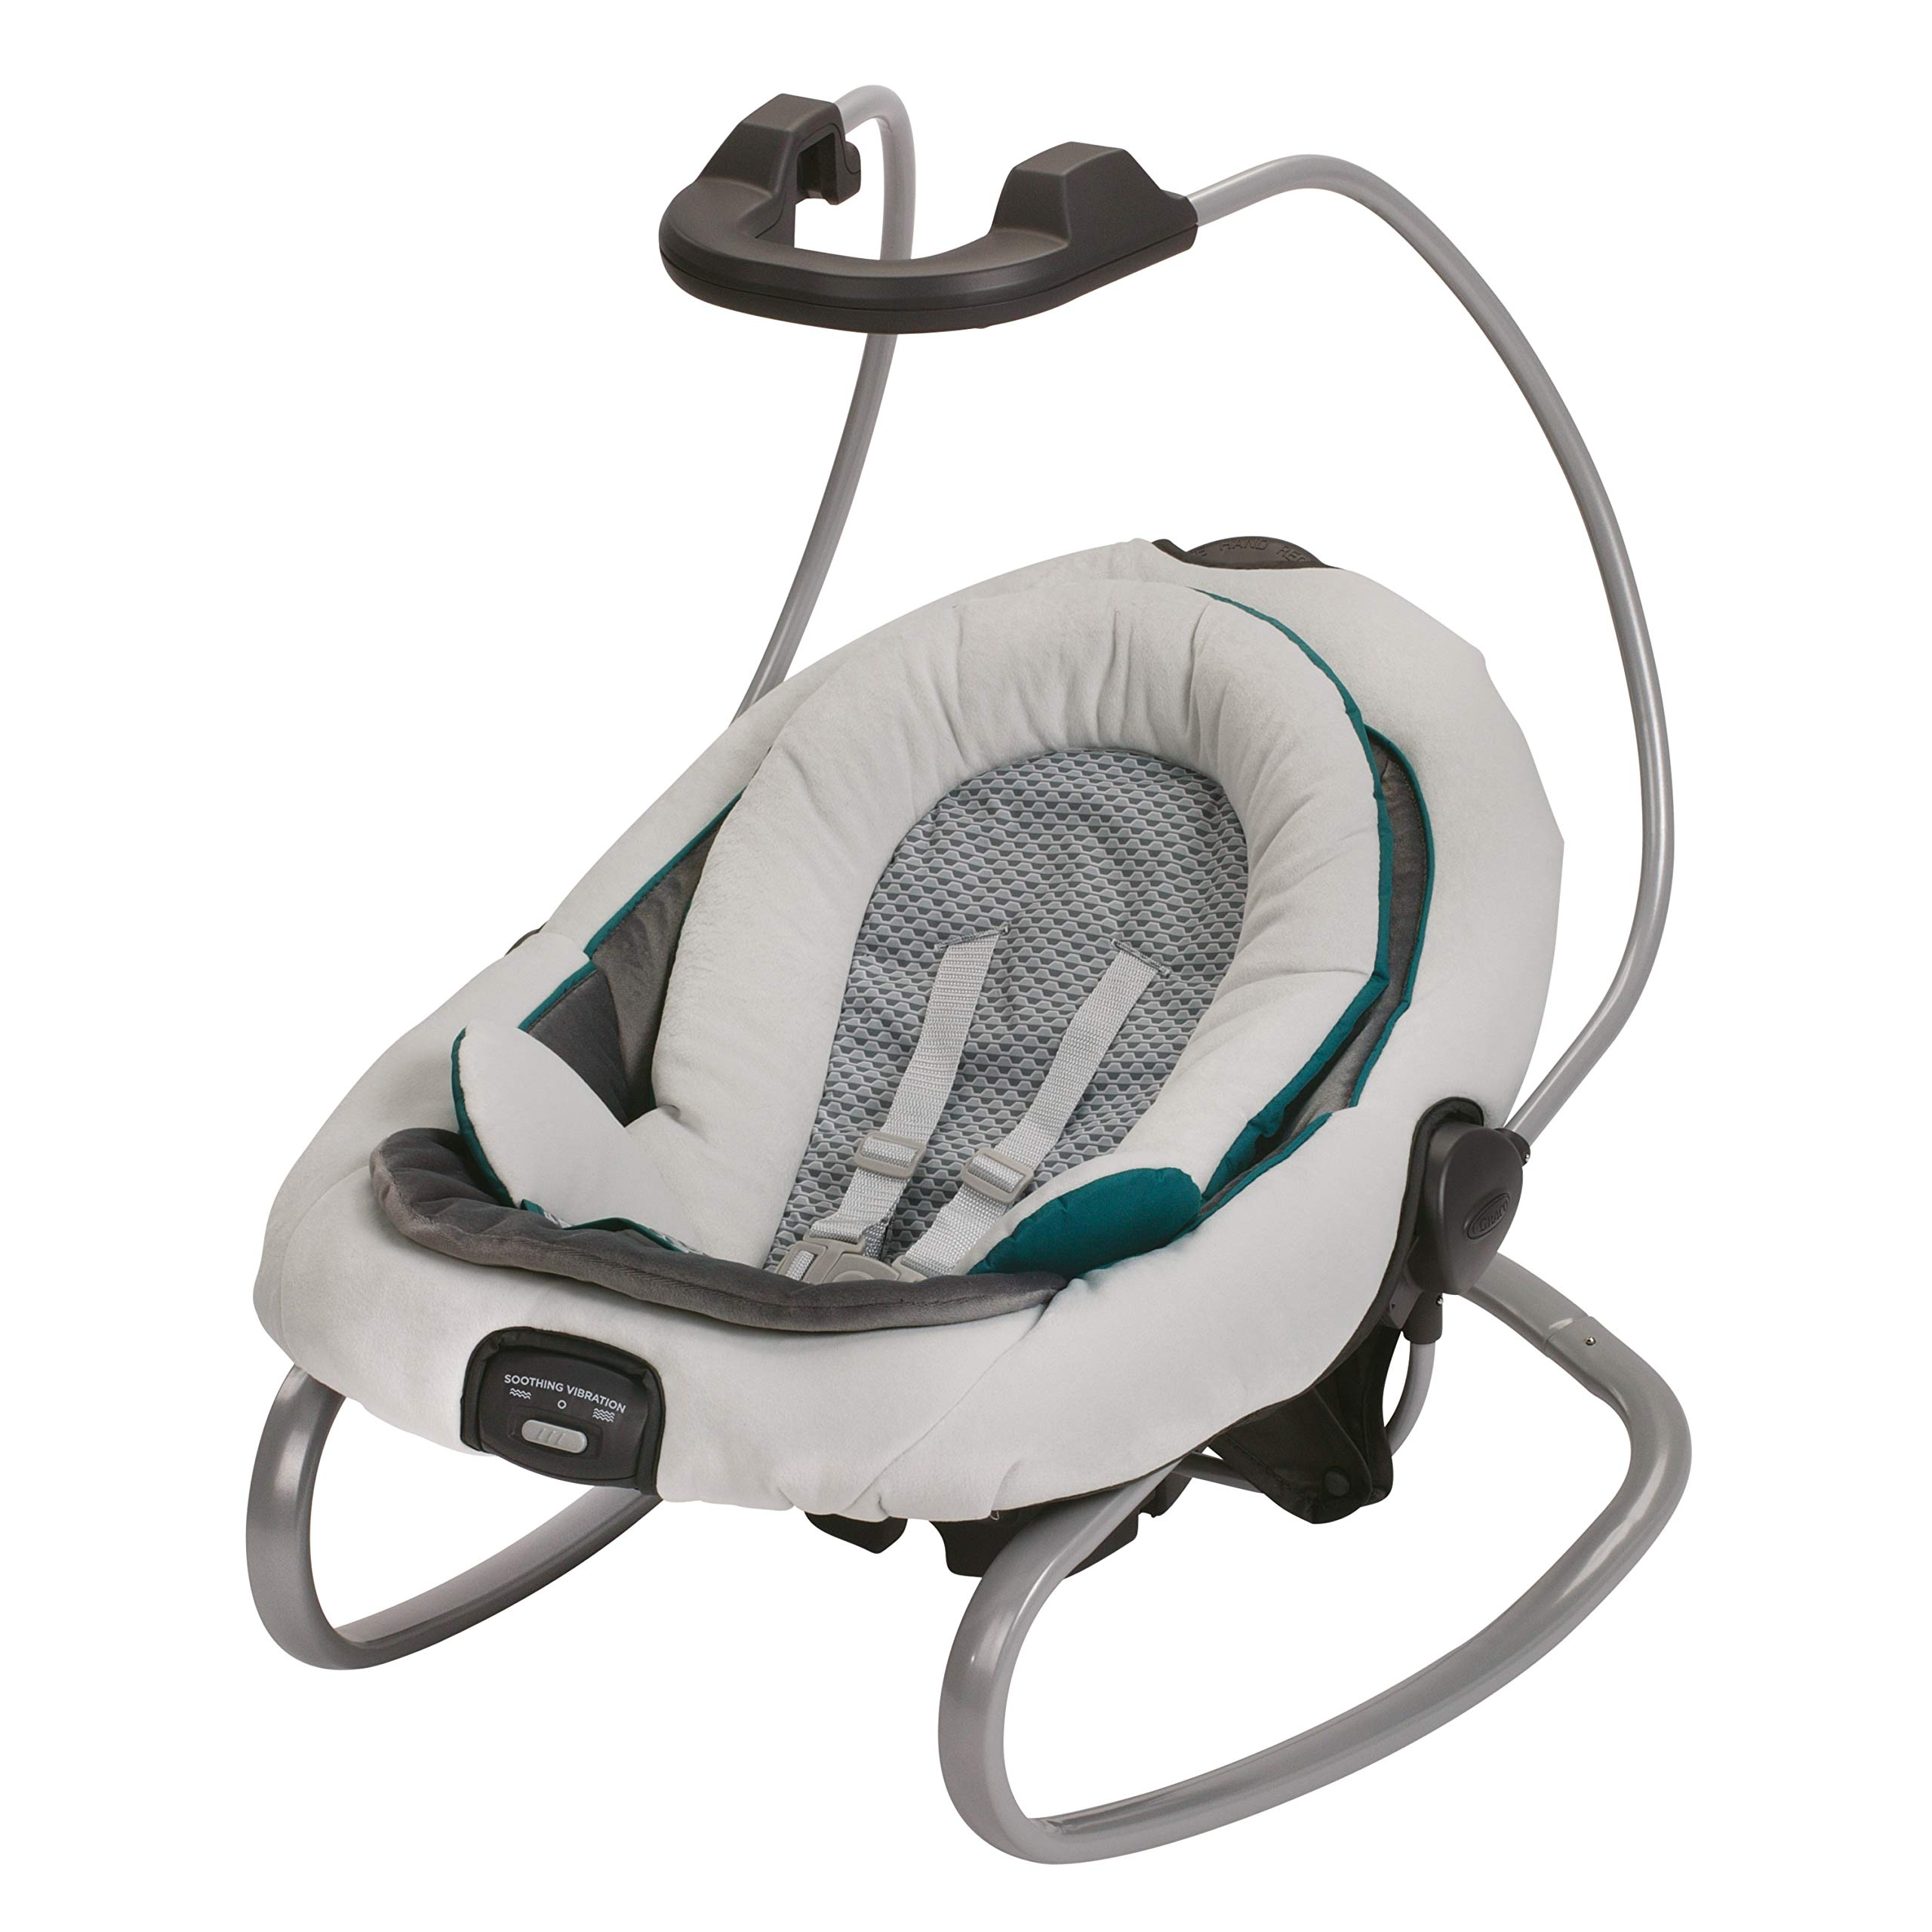 Graco Duetsoothe Swing + Rocker, Sapphire, One Size by Graco (Image #3)